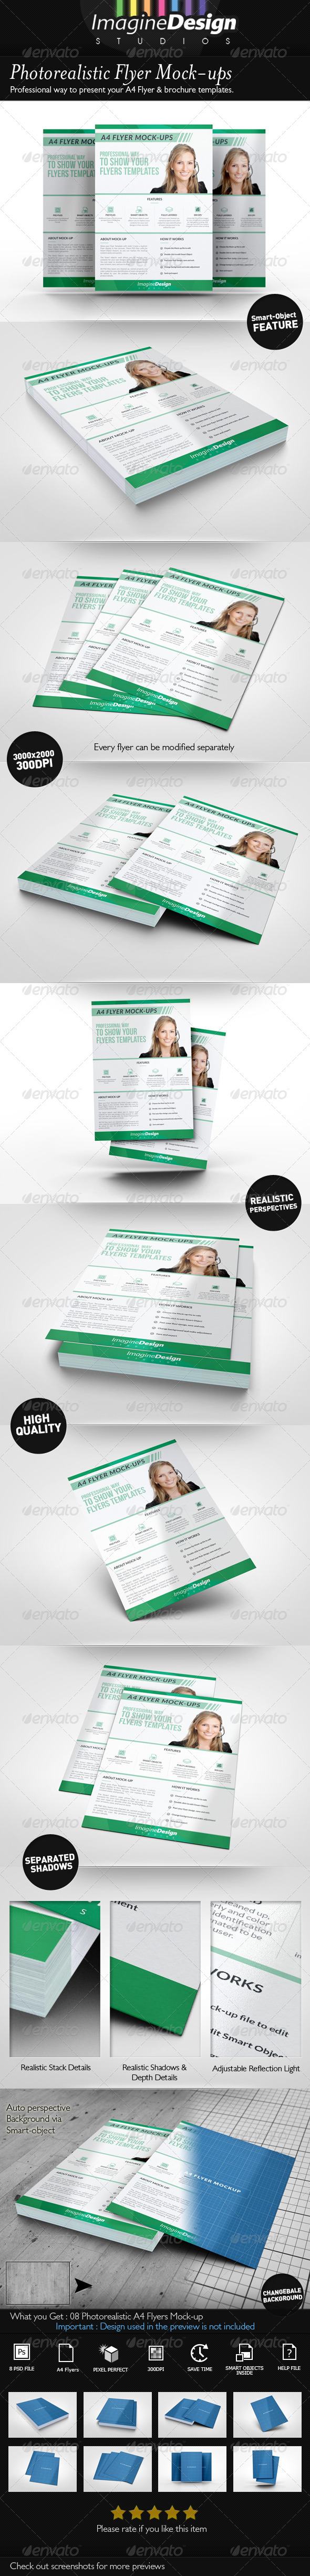 GraphicRiver Photorealistic Flyer Mock-ups 8414646